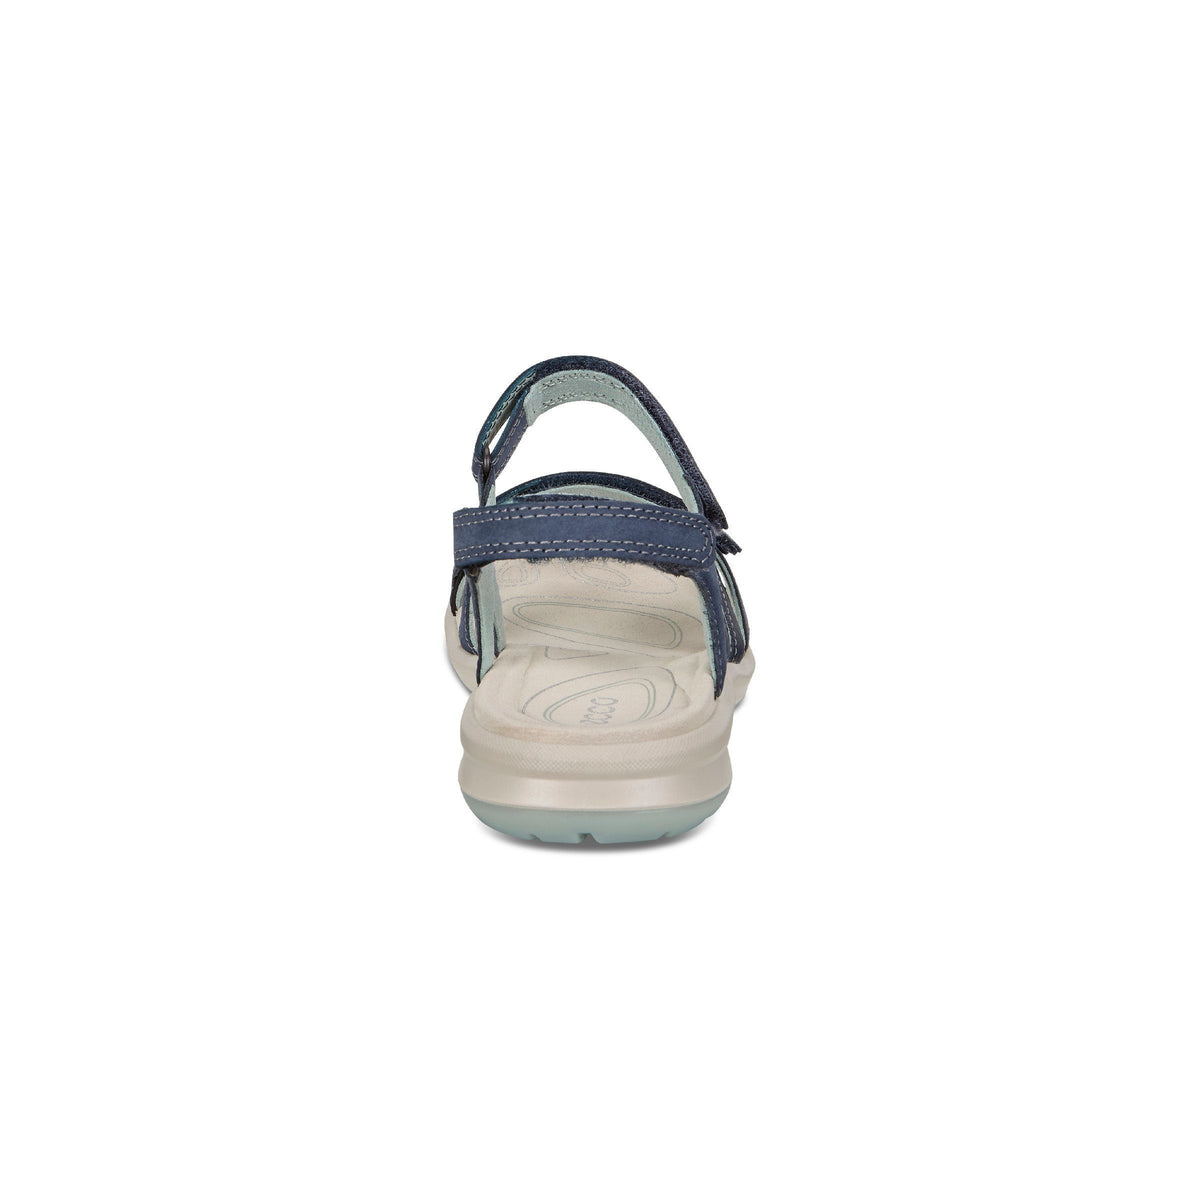 Cruise II Sandals Sandals ECCO